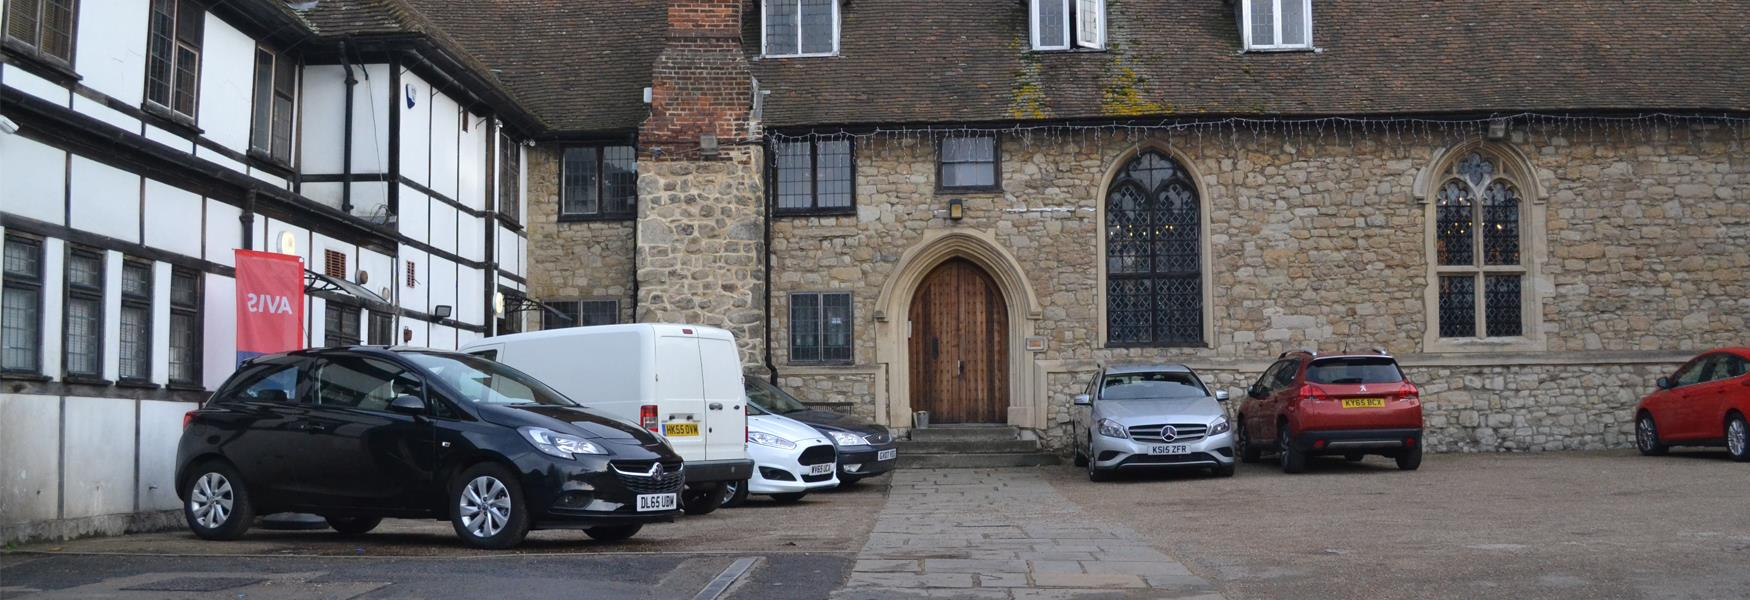 Avis Car Hire at Corpus Christi Hall, Maidstone